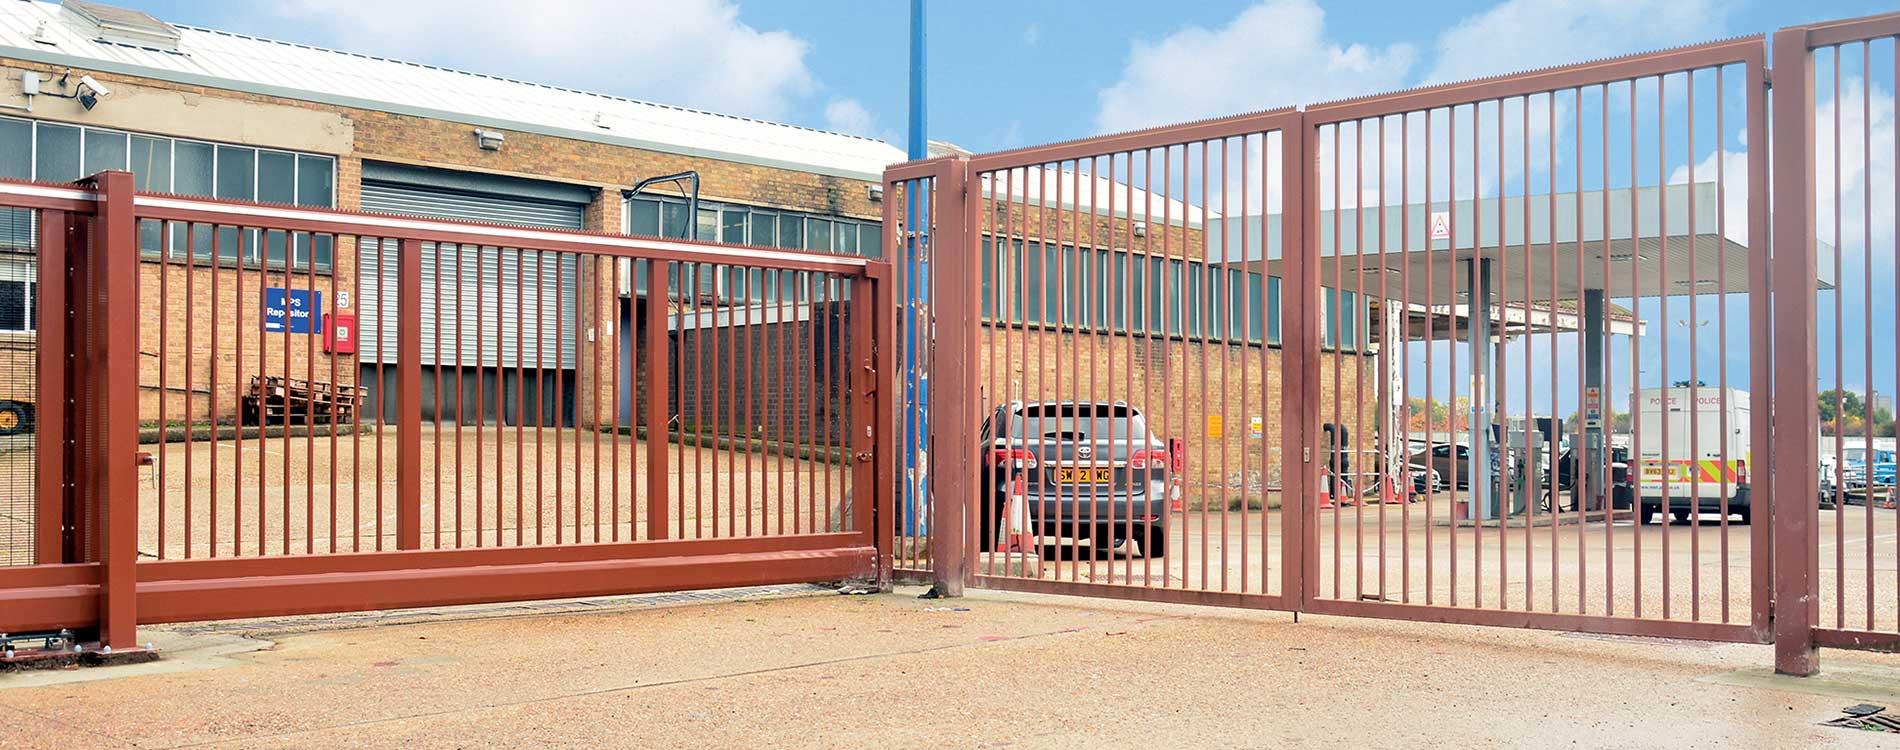 Huge MET police gate at Hendon training center